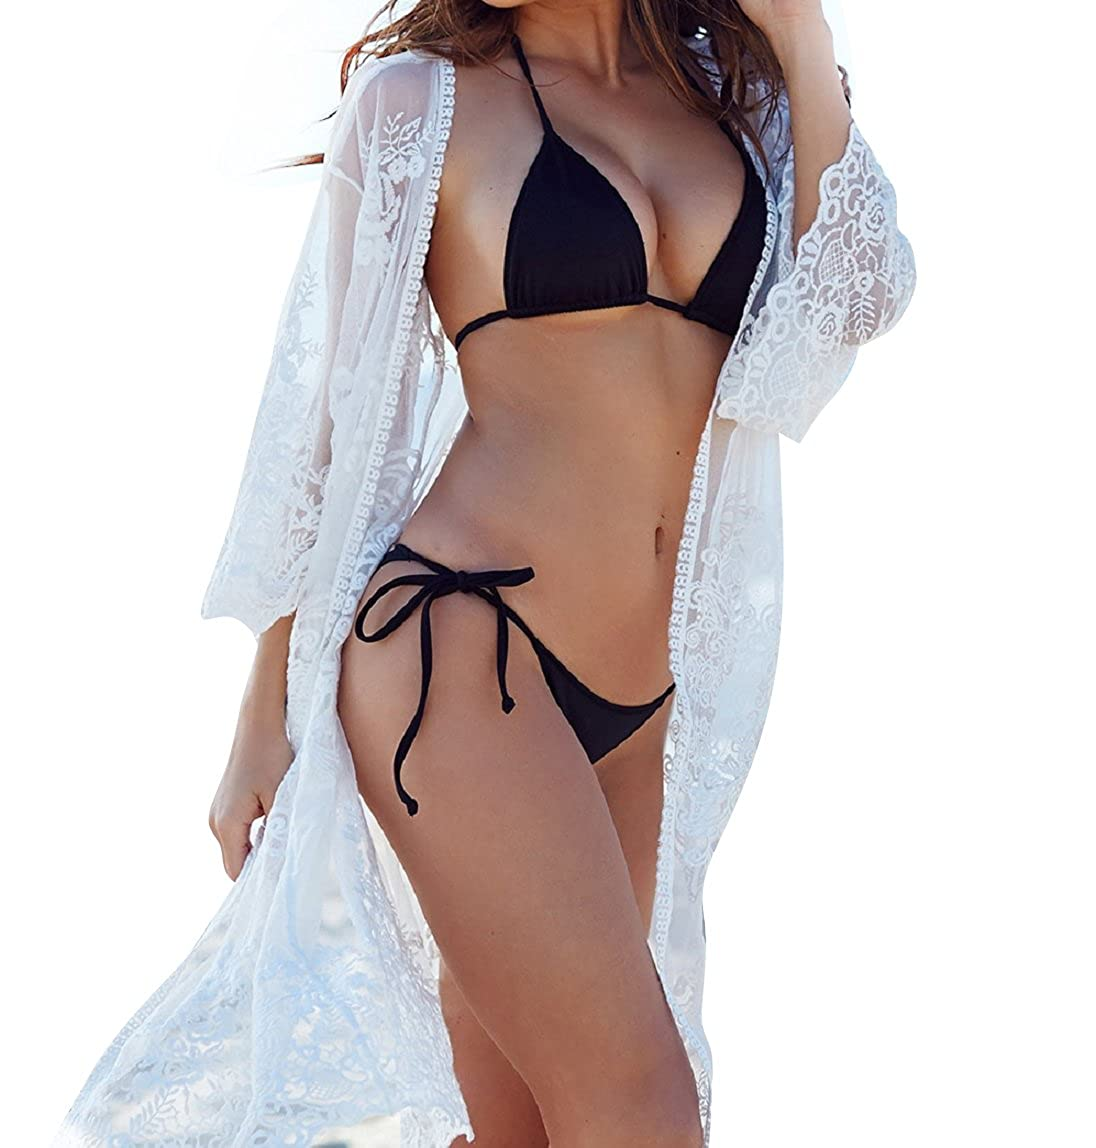 Blouses & Shirts Lower Price with Summer Style Women Sexy V-neck Transparent See-through Loose Beachwear Bikini Smock Sunscreen Blouse Tops Beautiful And Charming